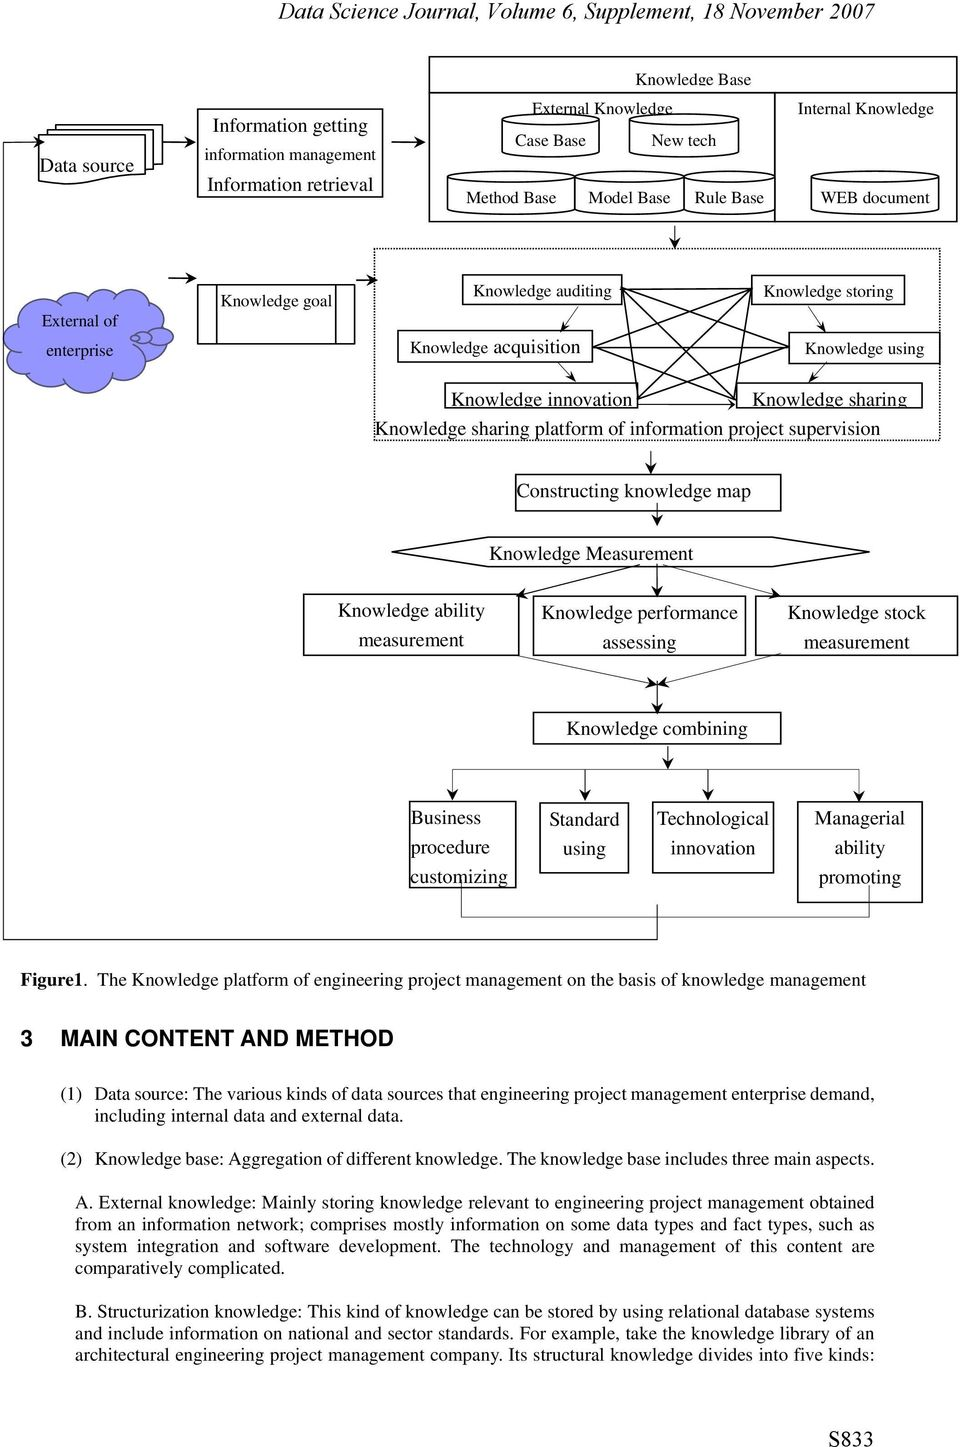 project supervision Constructing knowledge map Knowledge Measurement Knowledge ability measurement Knowledge performance assessing Knowledge stock measurement Knowledge combining Business procedure